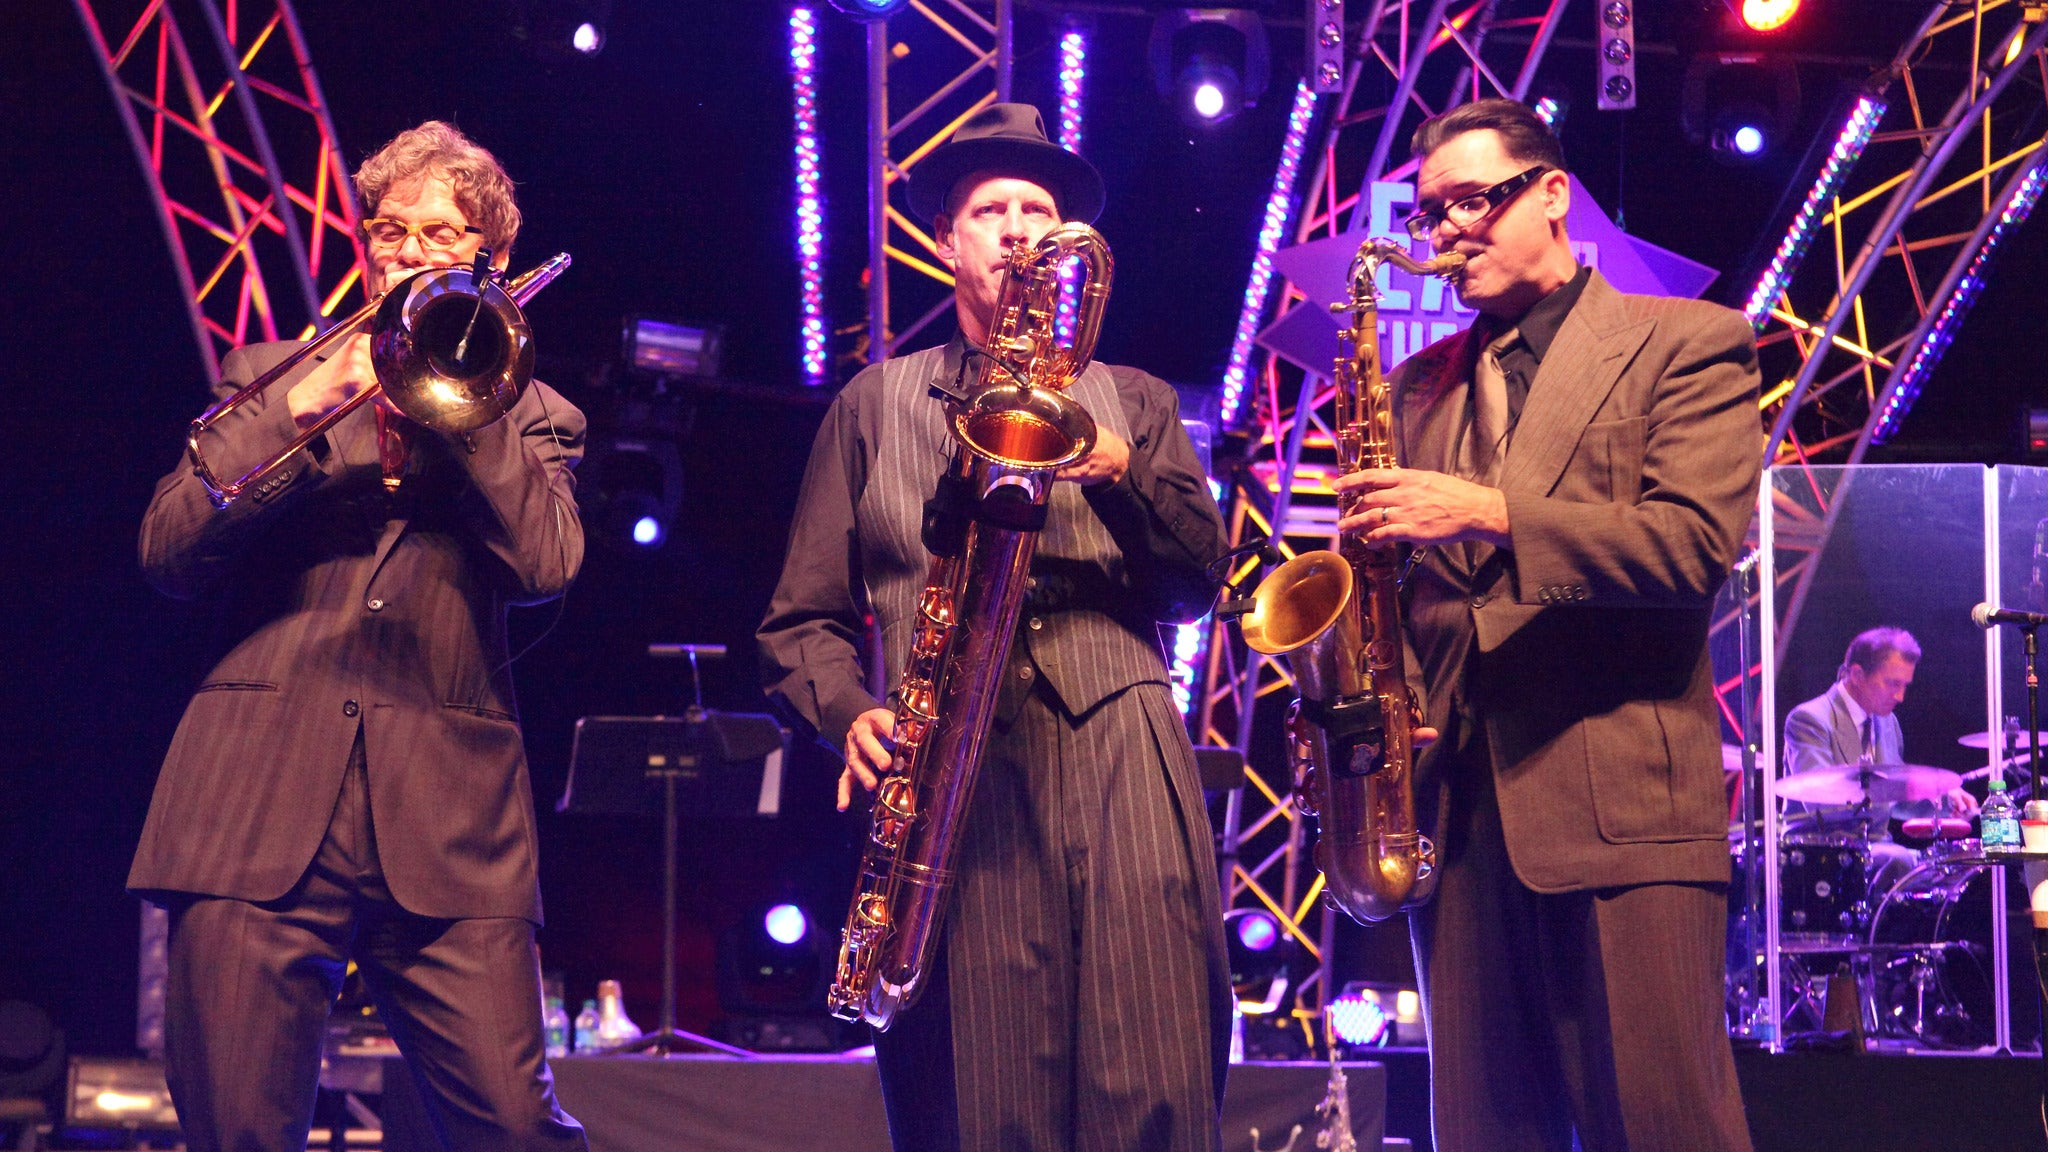 Big Bad Voodoo Daddy at Thunder Valley Casino Resort